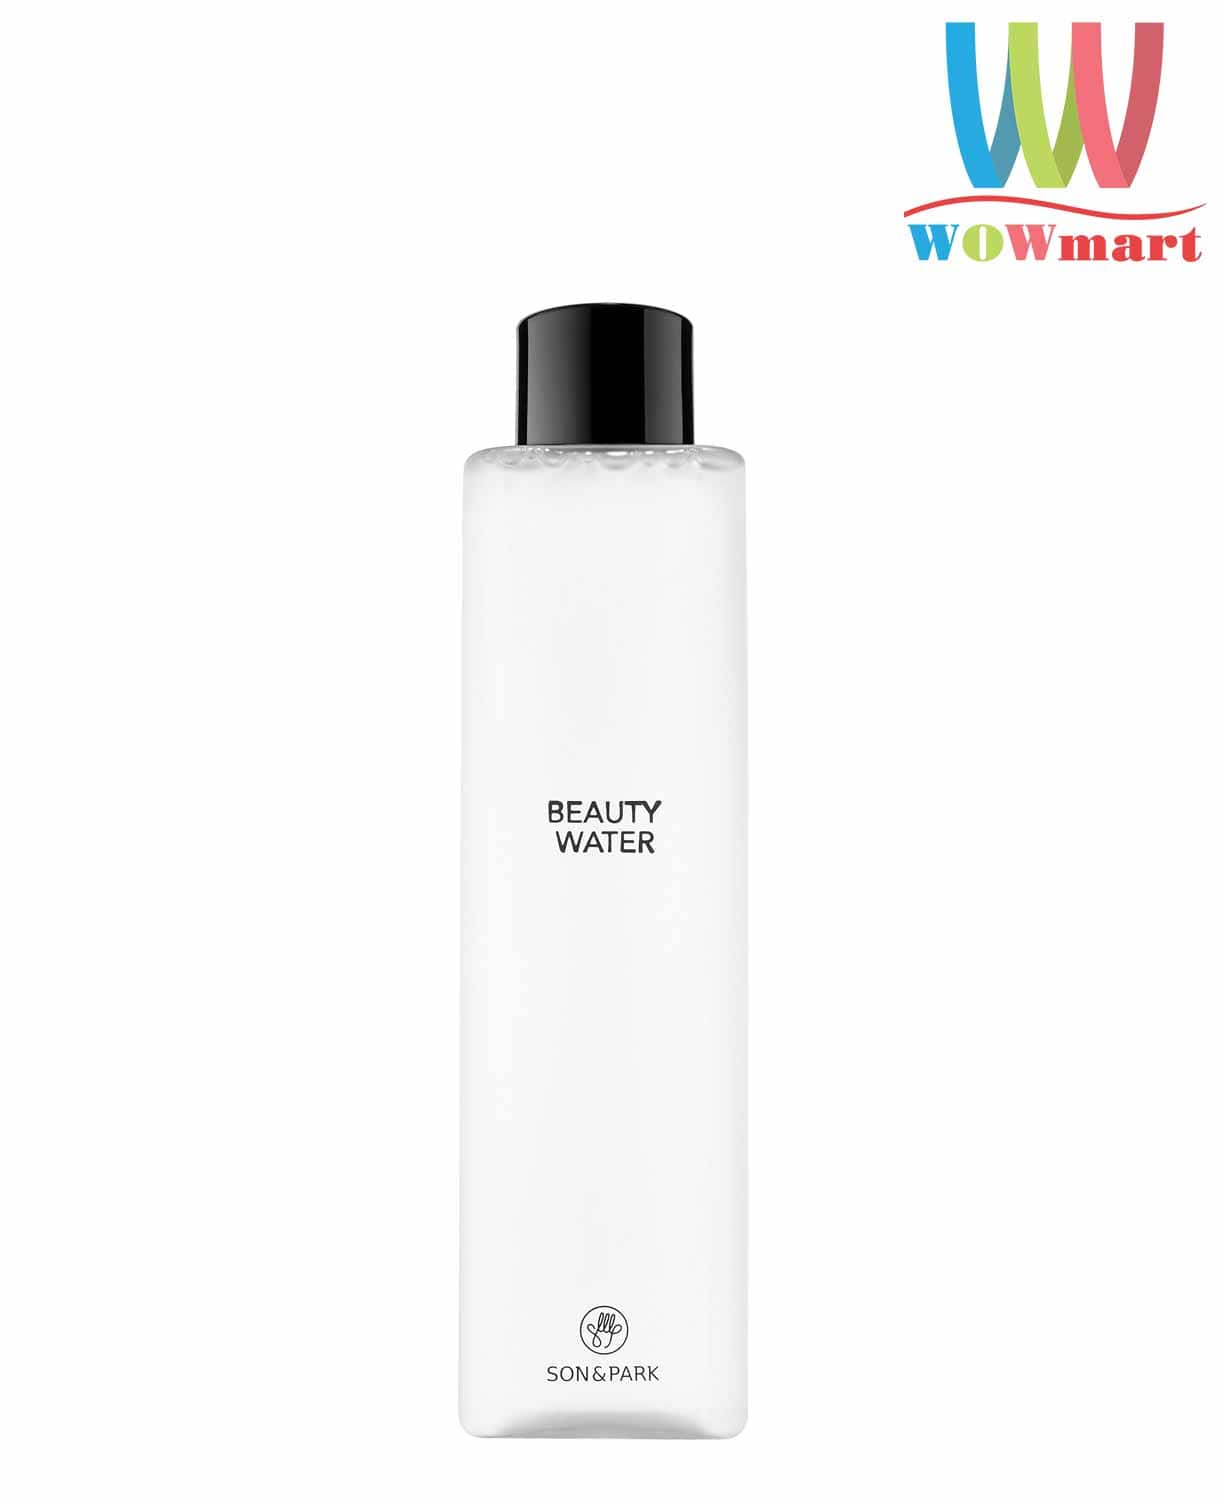 nuoc-hoa-hong-toner-son-park-beauty-water-340ml